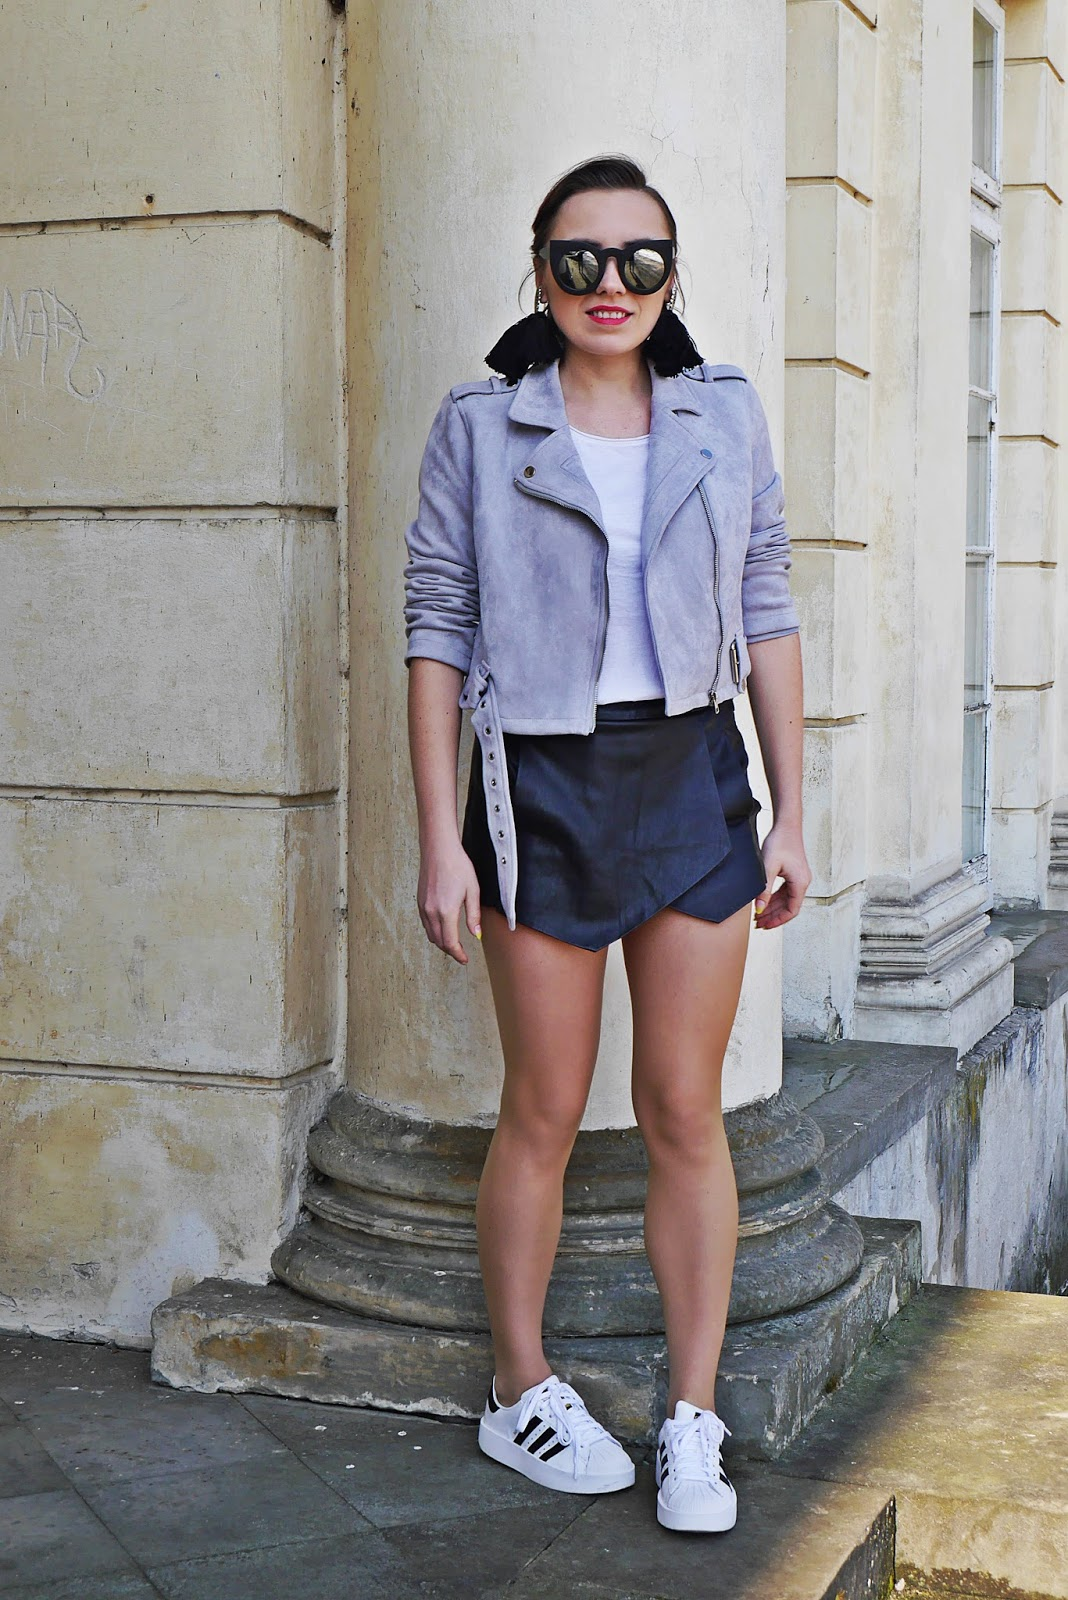 1_adidas_superstar_zara_shorts_gray_biker_jacket_karyn_blog_modowy_250318asd